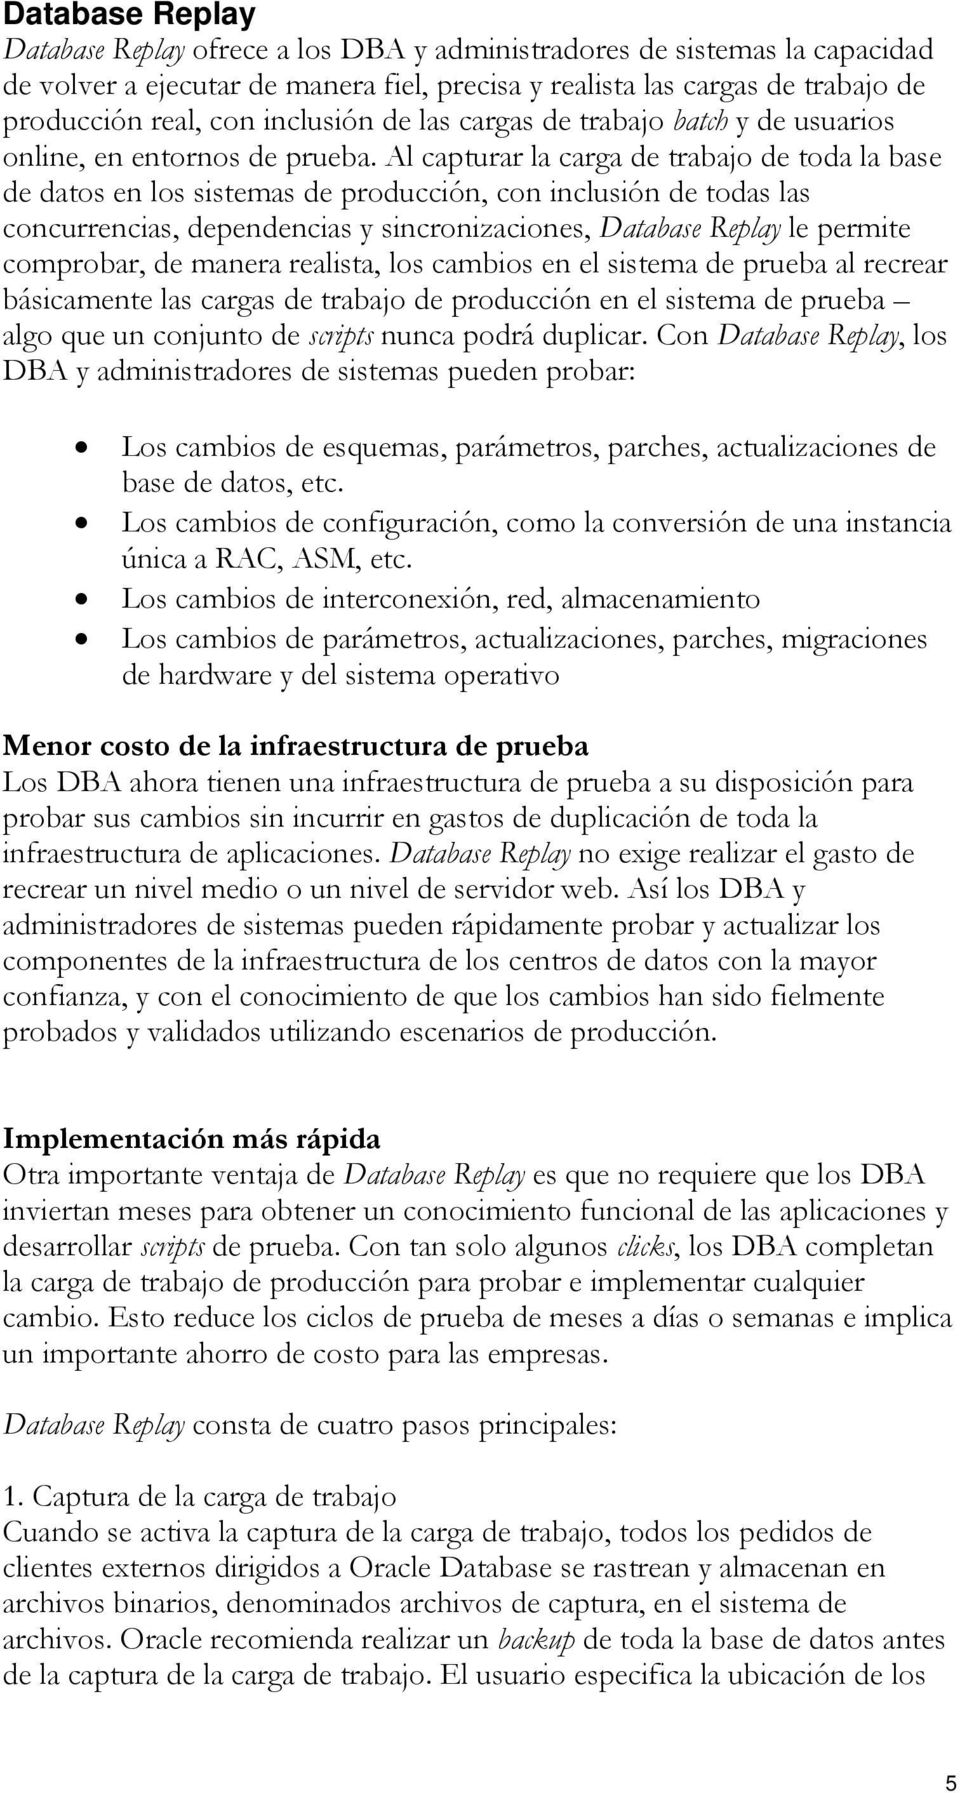 Al capturar la carga de trabajo de toda la base de datos en los sistemas de producción, con inclusión de todas las concurrencias, dependencias y sincronizaciones, Database Replay le permite